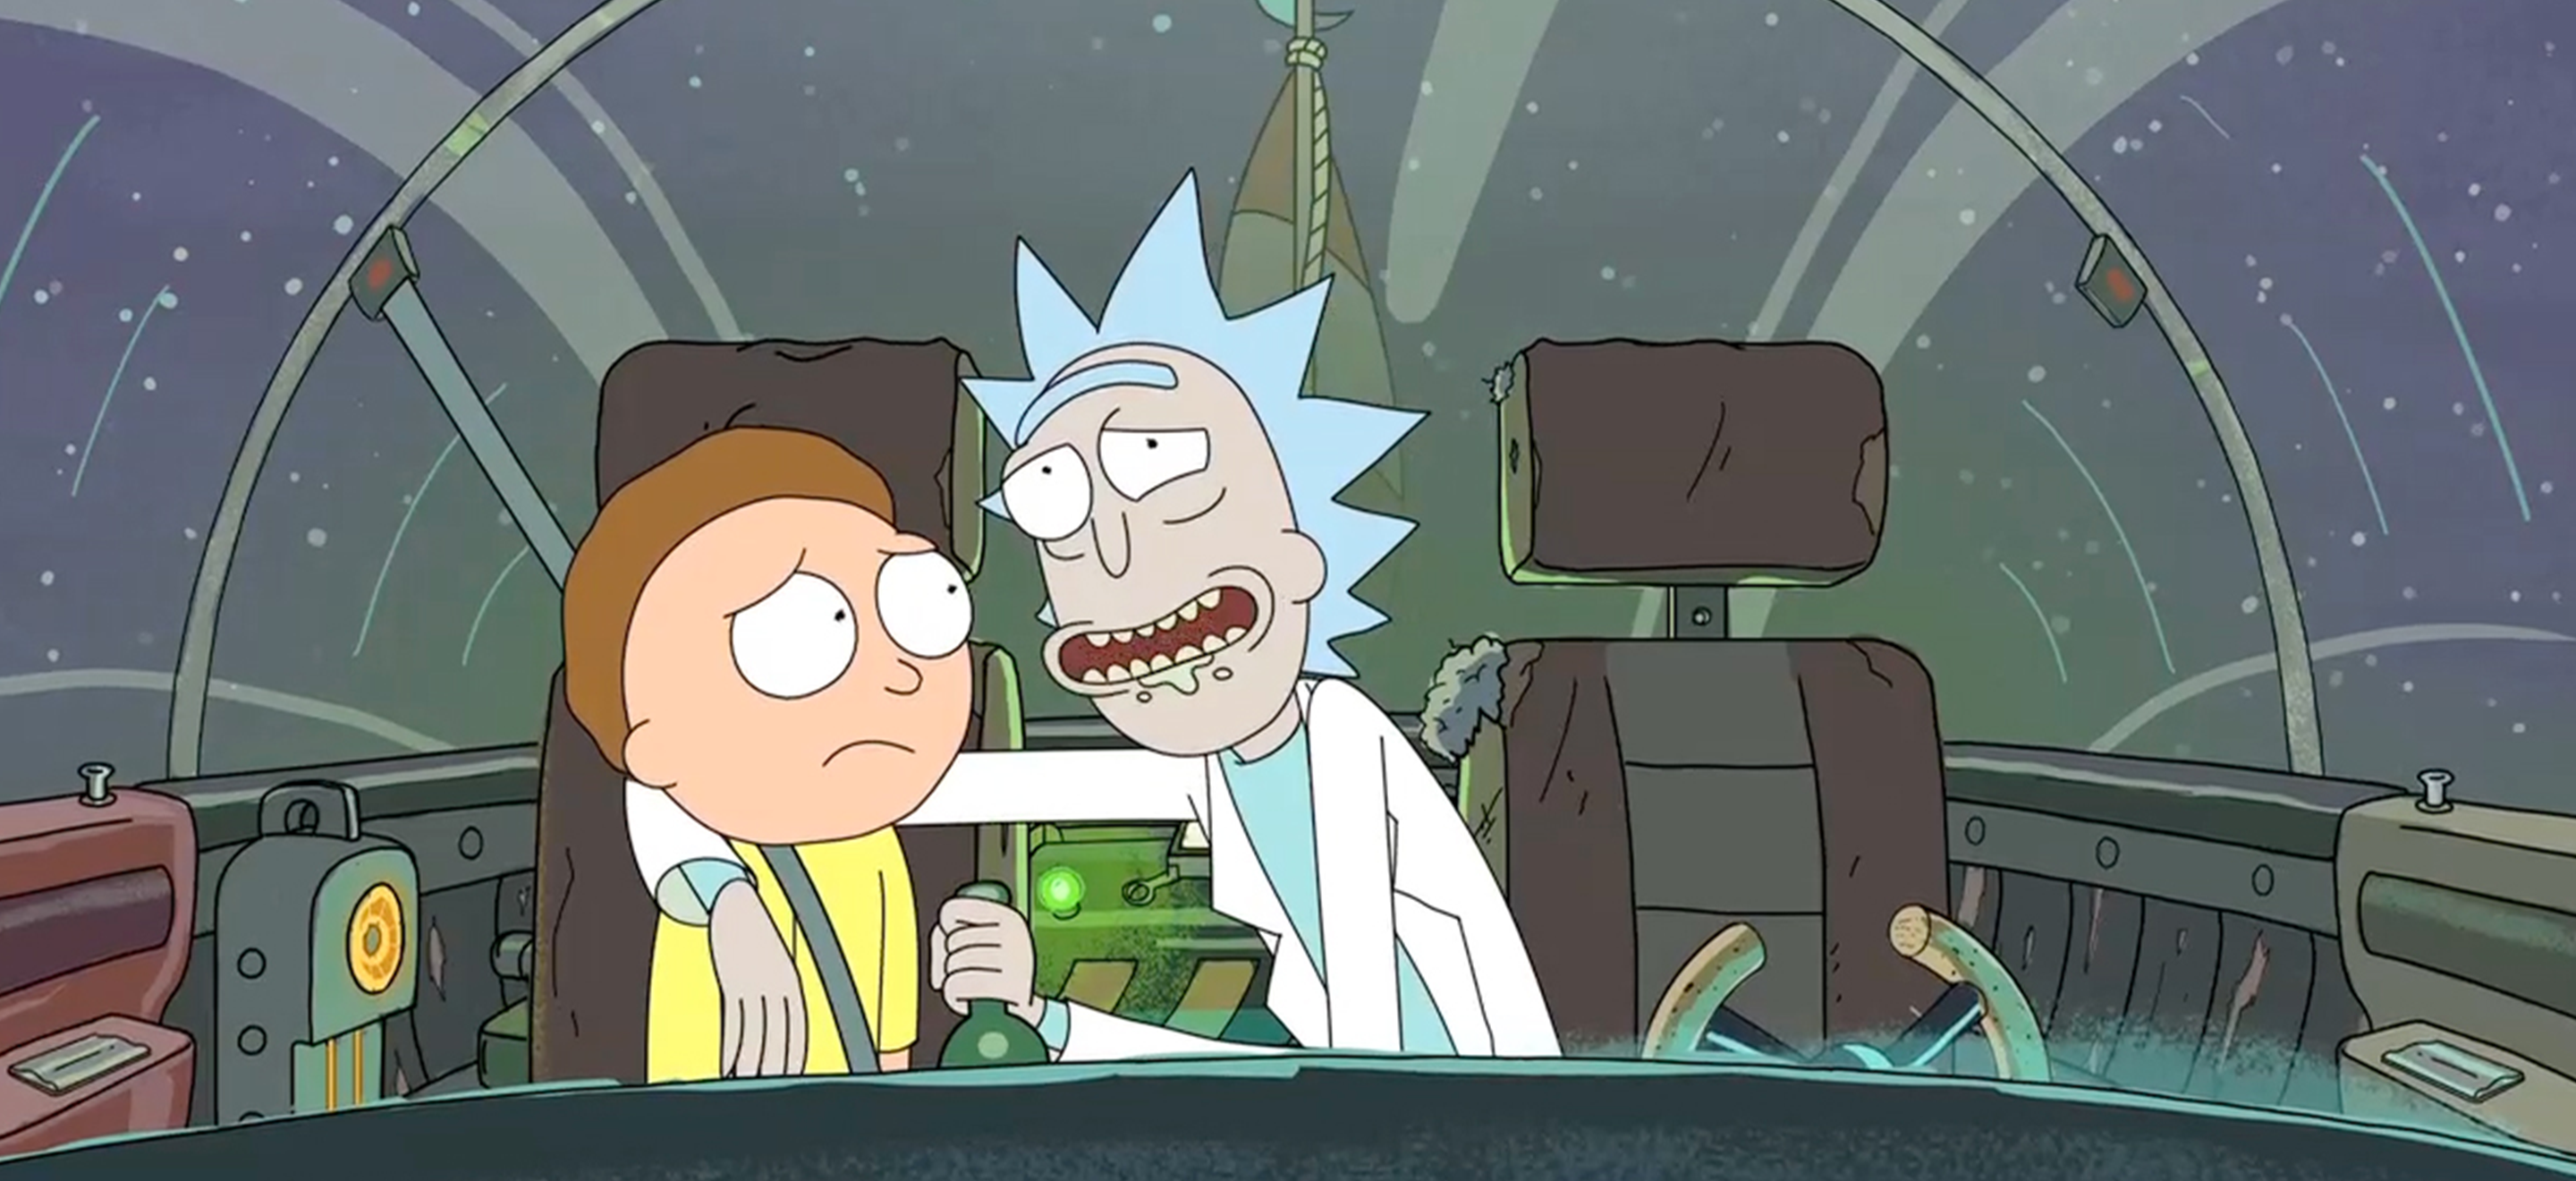 https://www.micromania.fr/on/demandware.static/-/Sites-Micromania-Library/default/dw5905e0a9/fanzone/dossier/rick&morty/RICKANDMORTY_Header.png